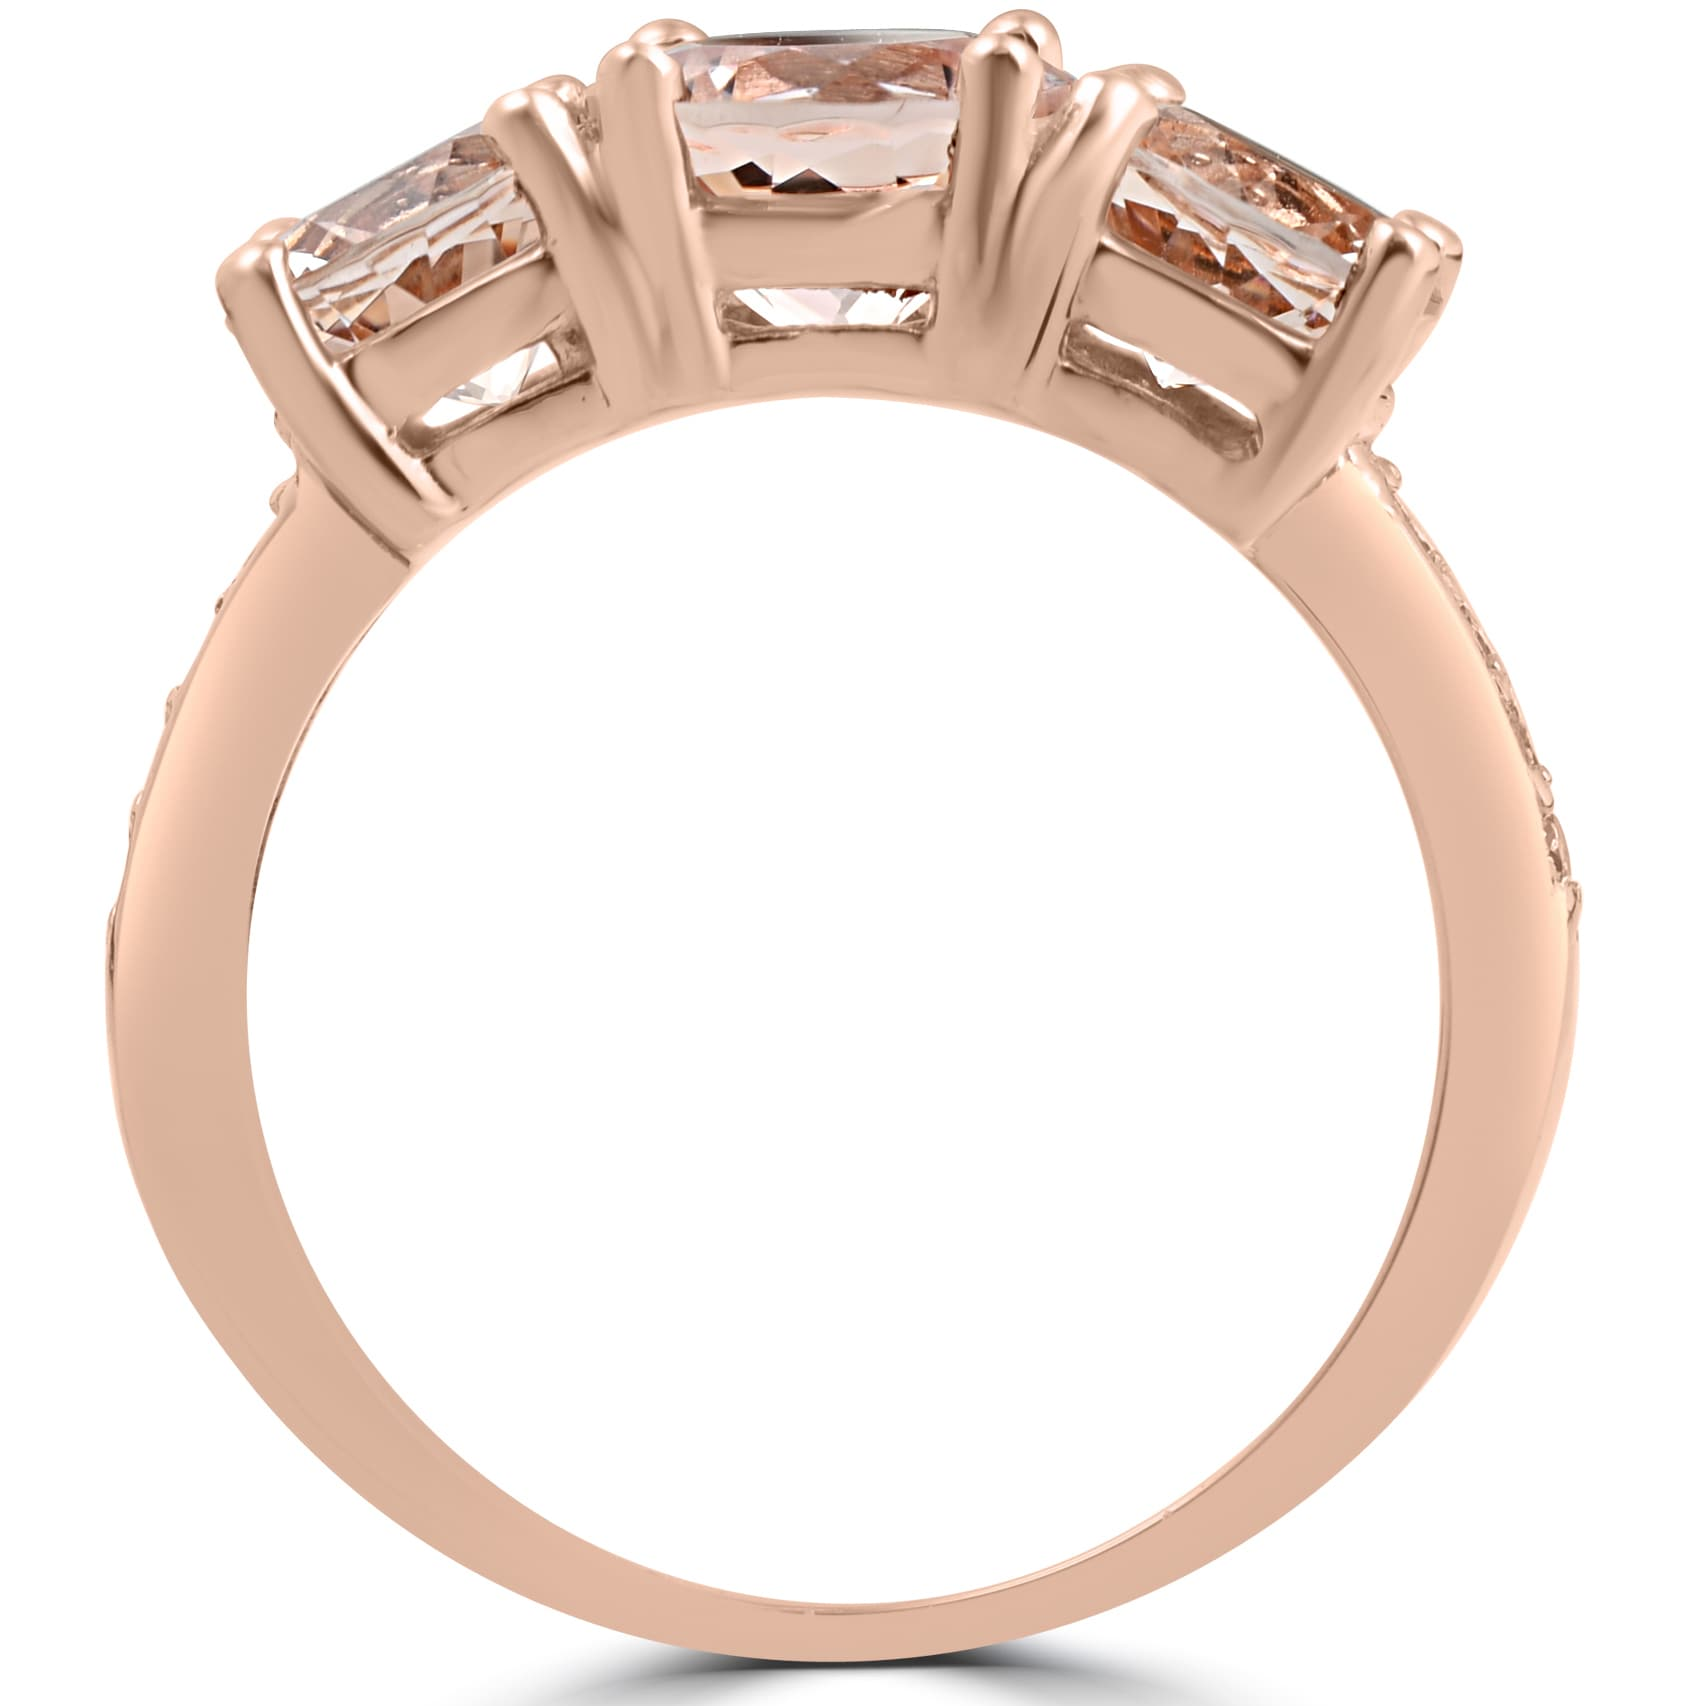 3 Diamond Promise Ring in 14K Pink Gold G-H,I2-I3 1//20 cttw, Size-4.75